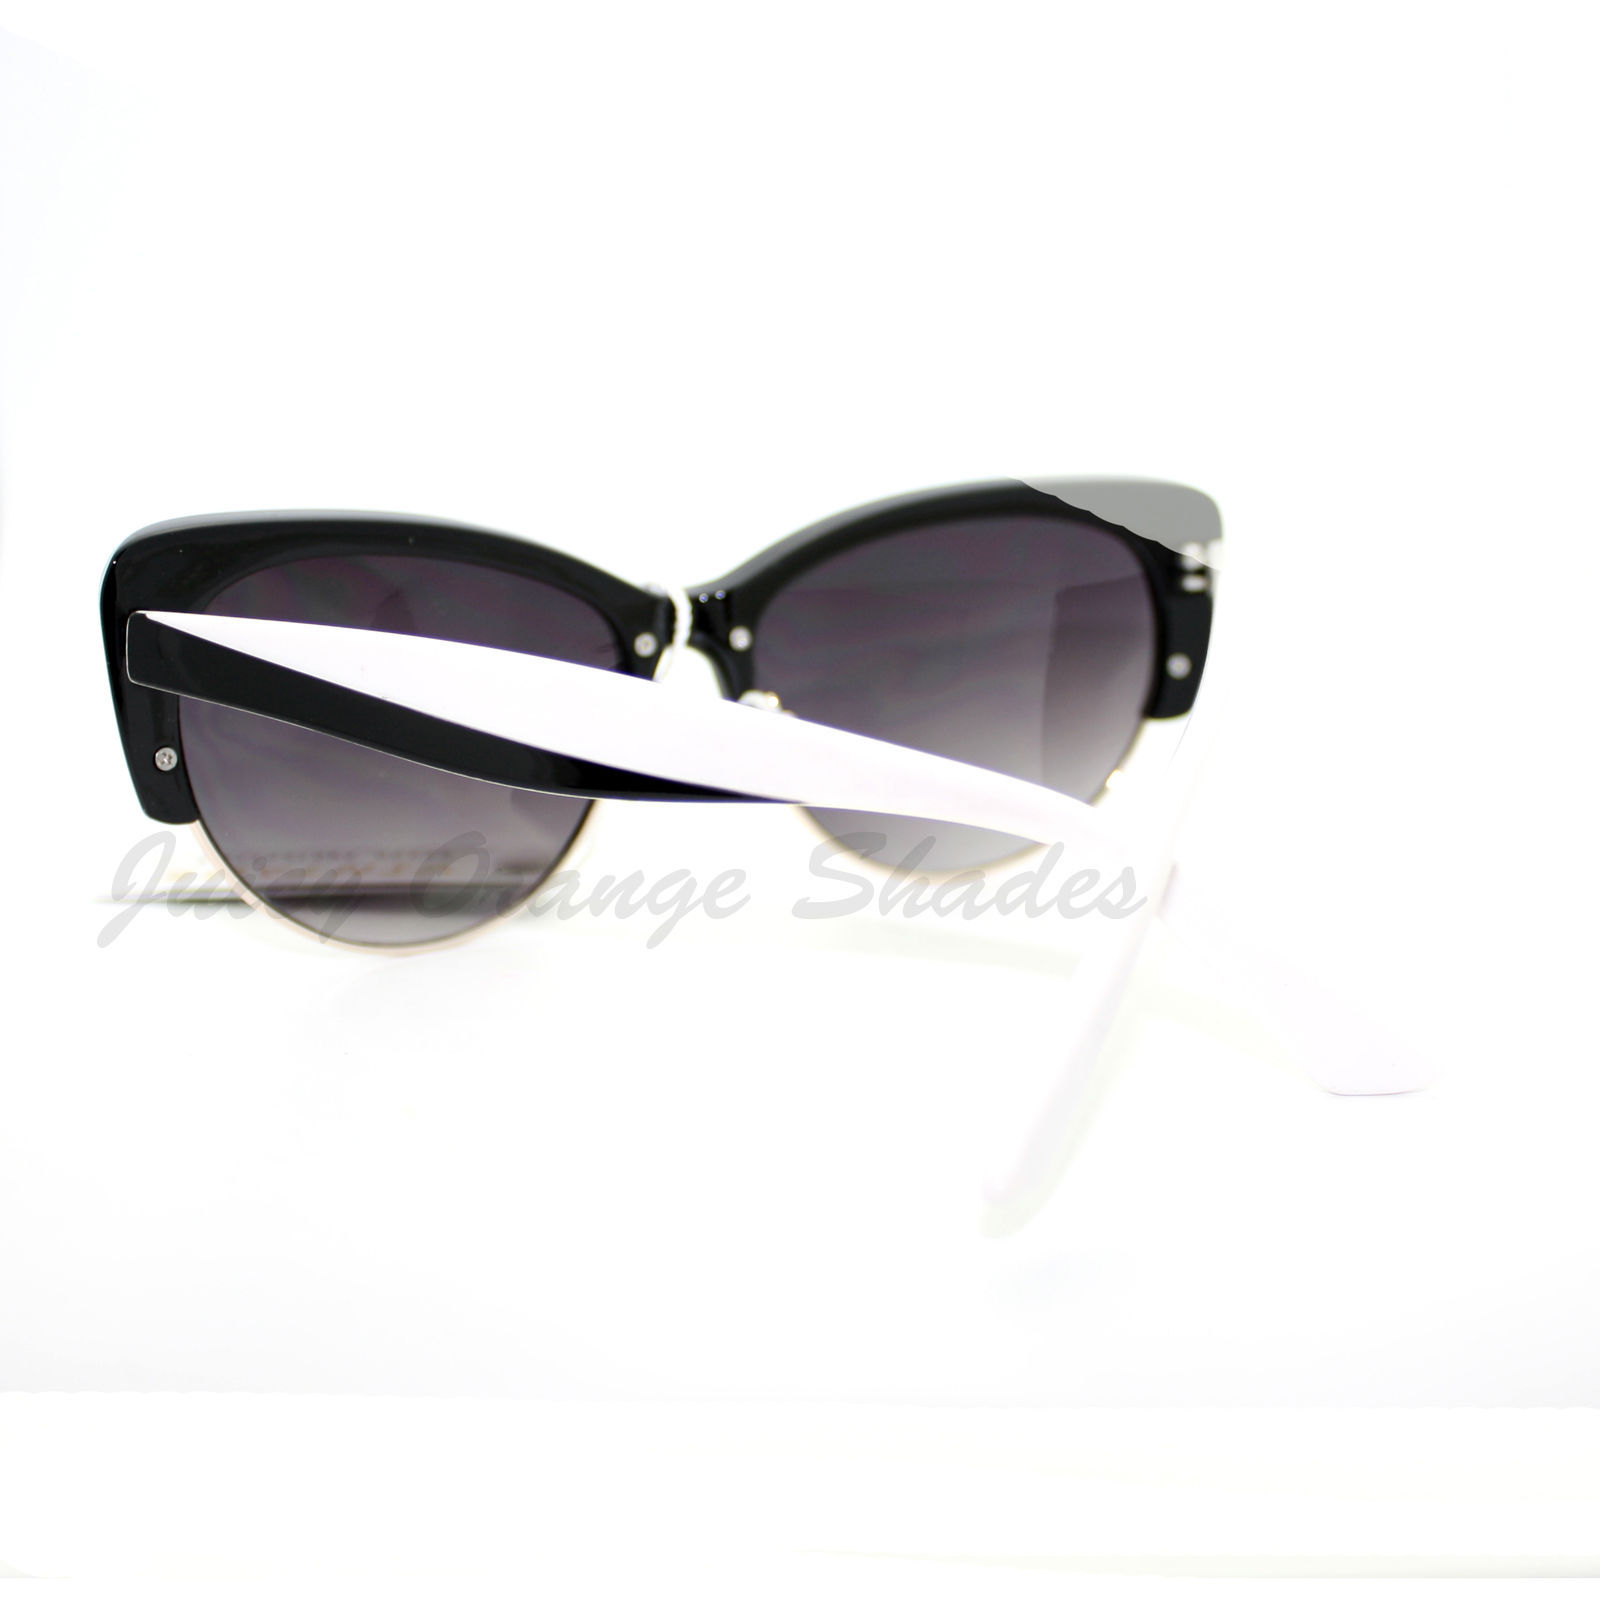 Womens Fashion Sunglasses Retro Plastic Top Oval Cateye Frame